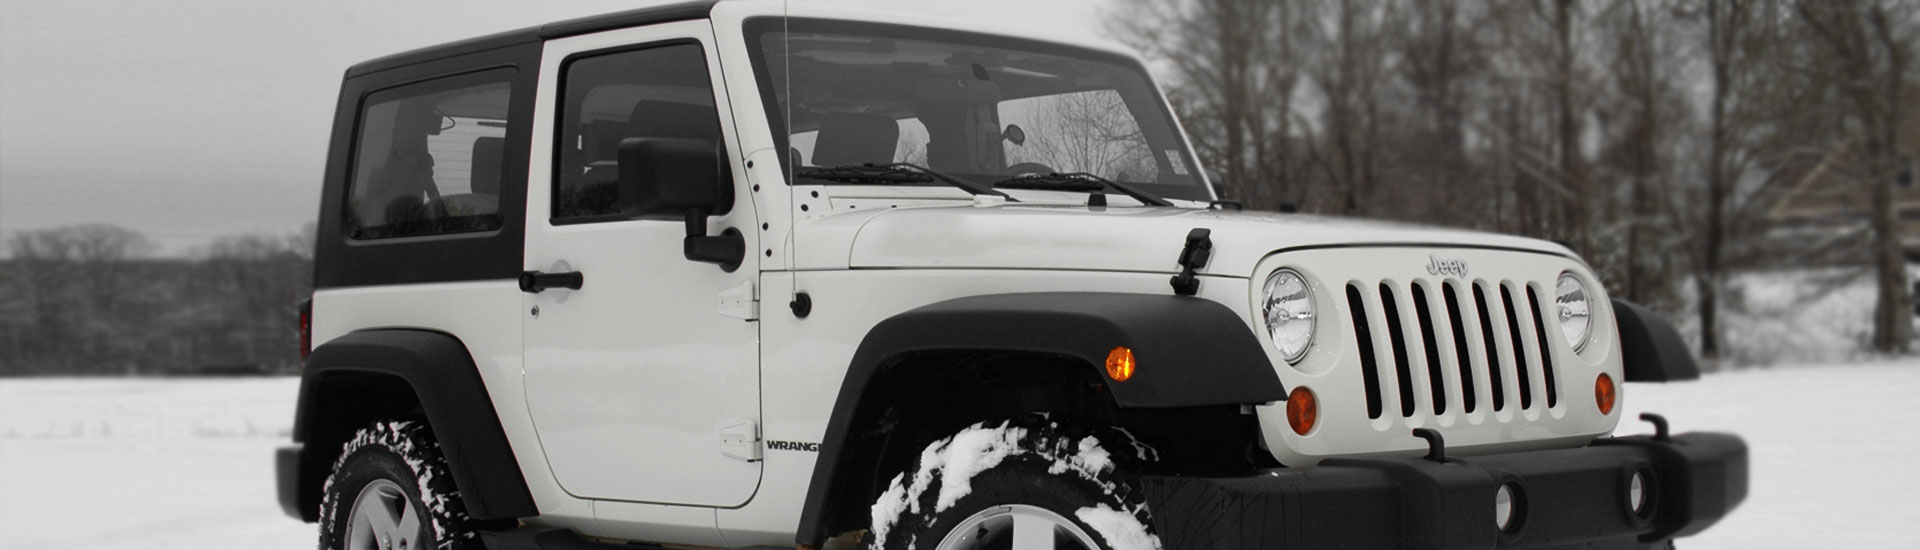 Jeep Wrangler Window Tint